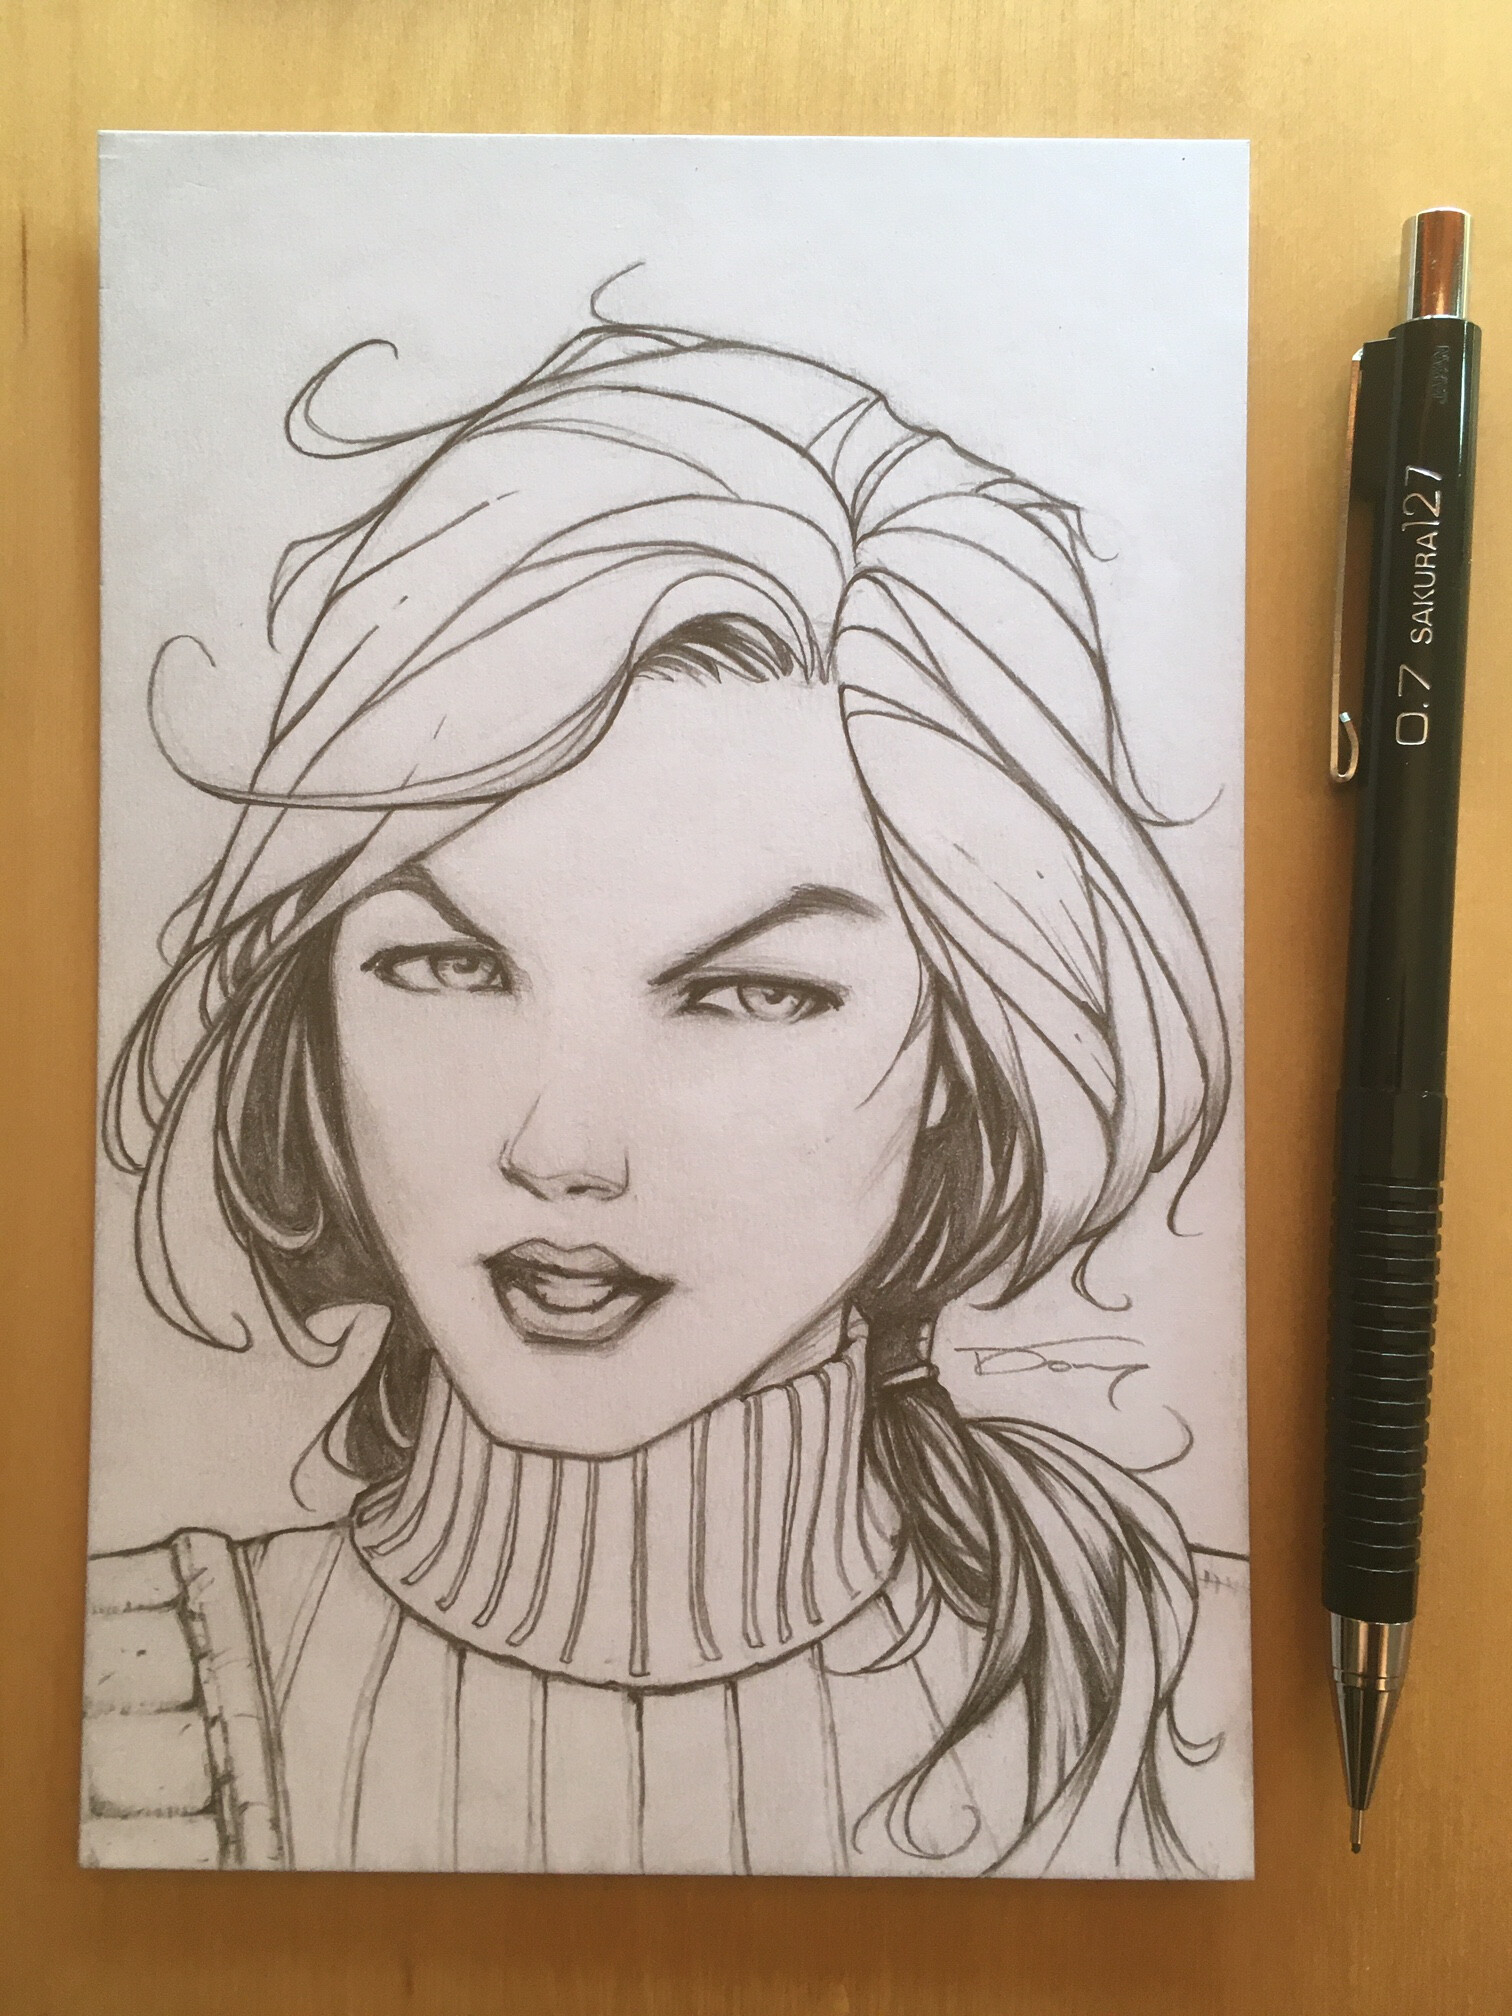 G.I. Joe's Scarlett head sketch. Drawn in pencil on 100 lbs white card stock 4 x 6 inch  If you're interested in a commission like this one, please visit my shop for more details! https://donnydtran.bigcartel.com/